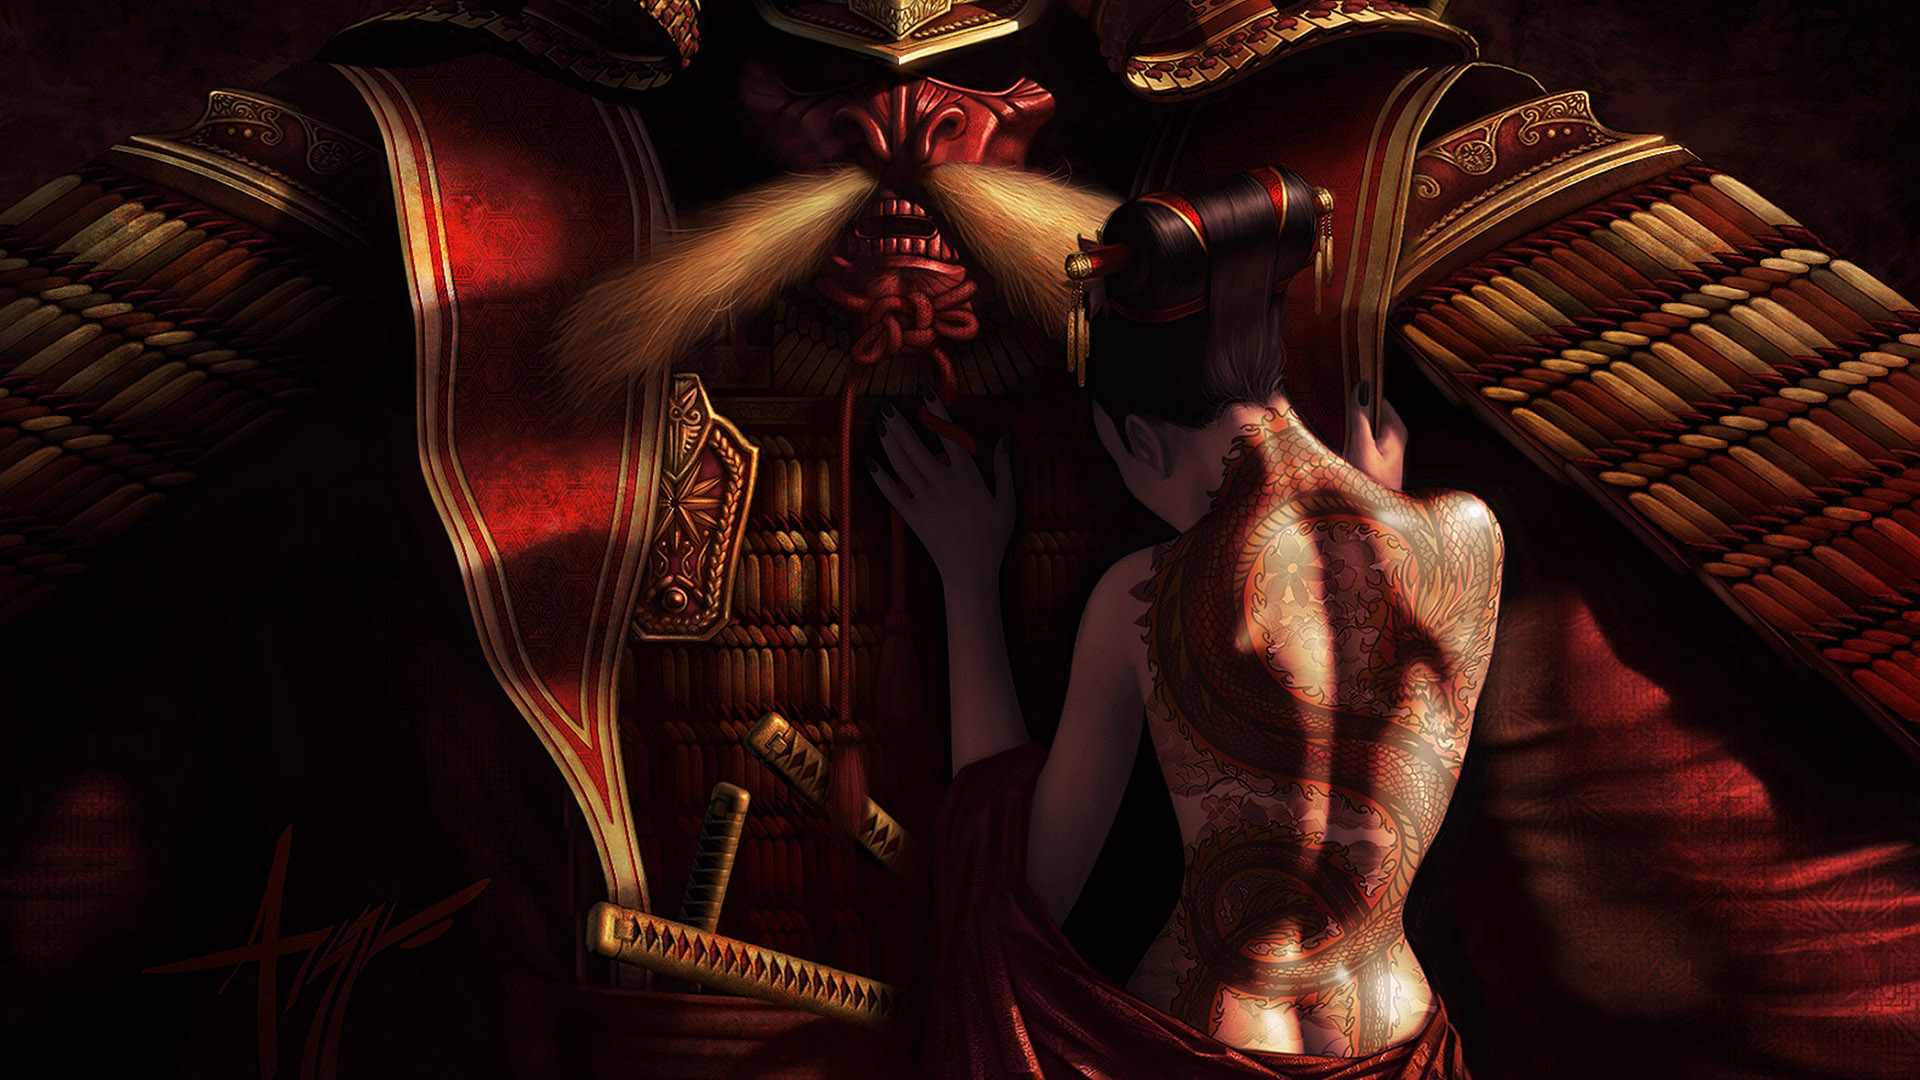 3D Sexy Game 3d & fantasy girls hd wallpaper 03 | imagez only